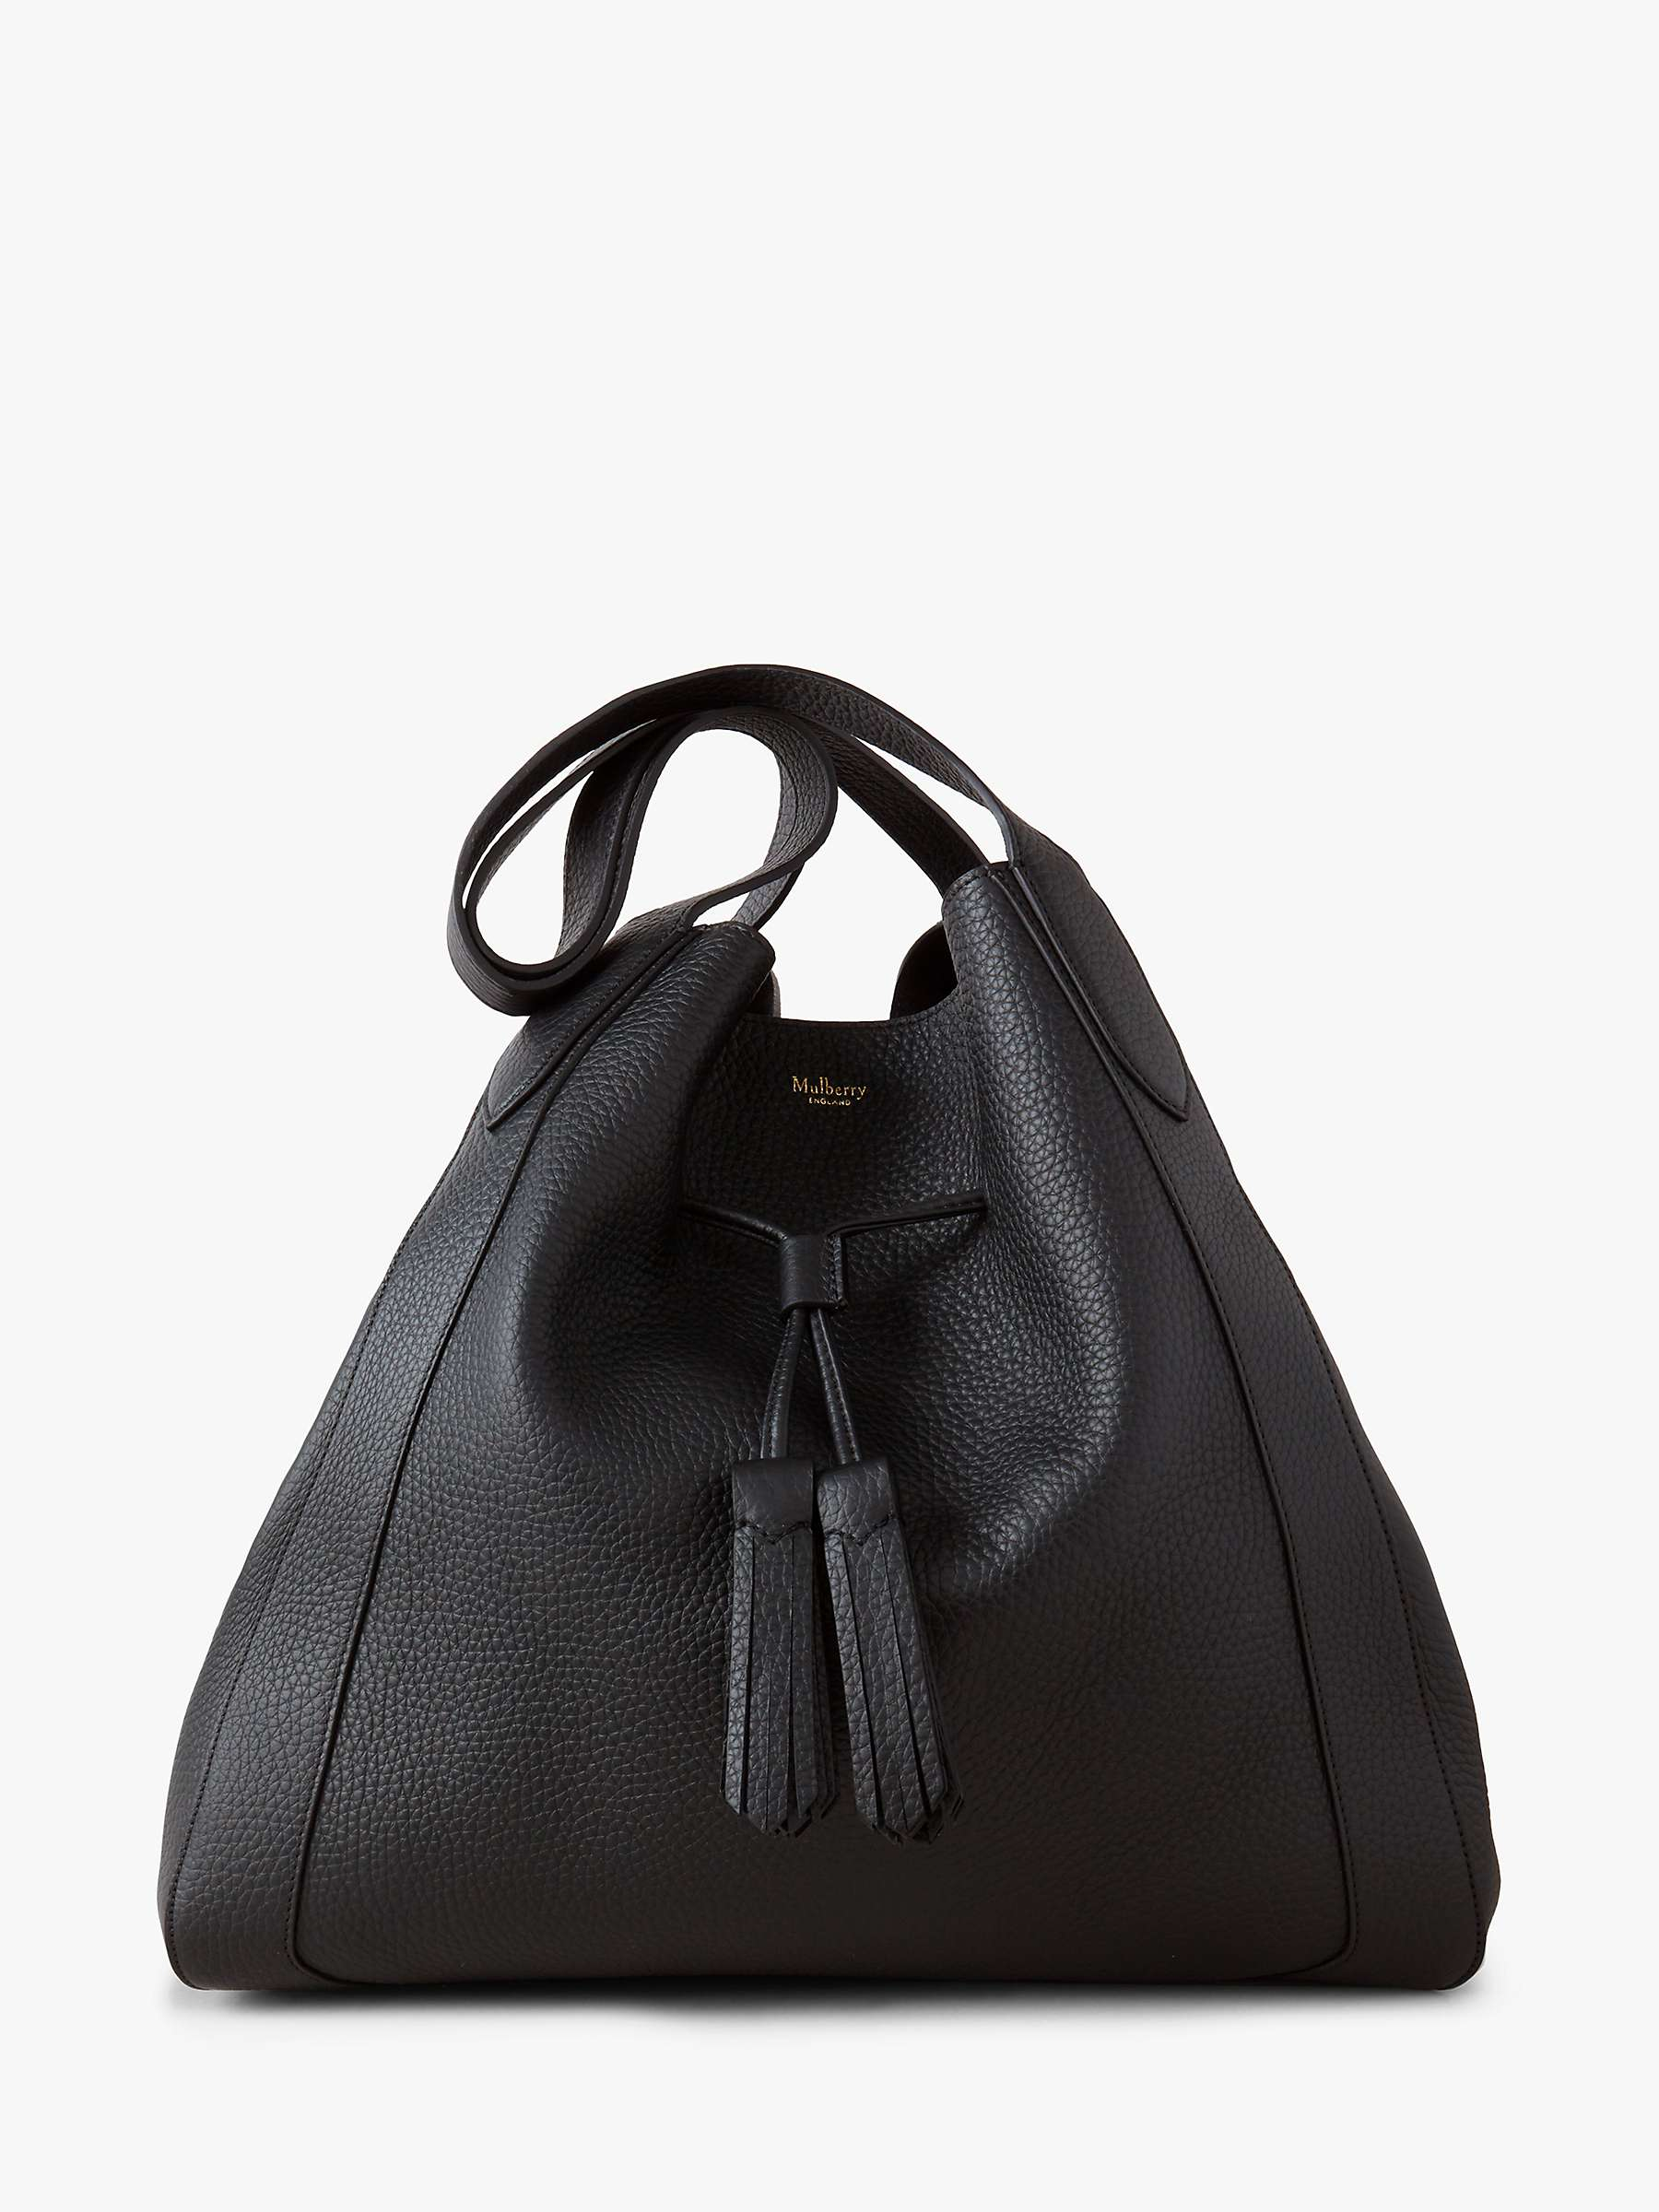 mulberry-millie-heavy-grain-leather-tote-bag,-black by john-lewis